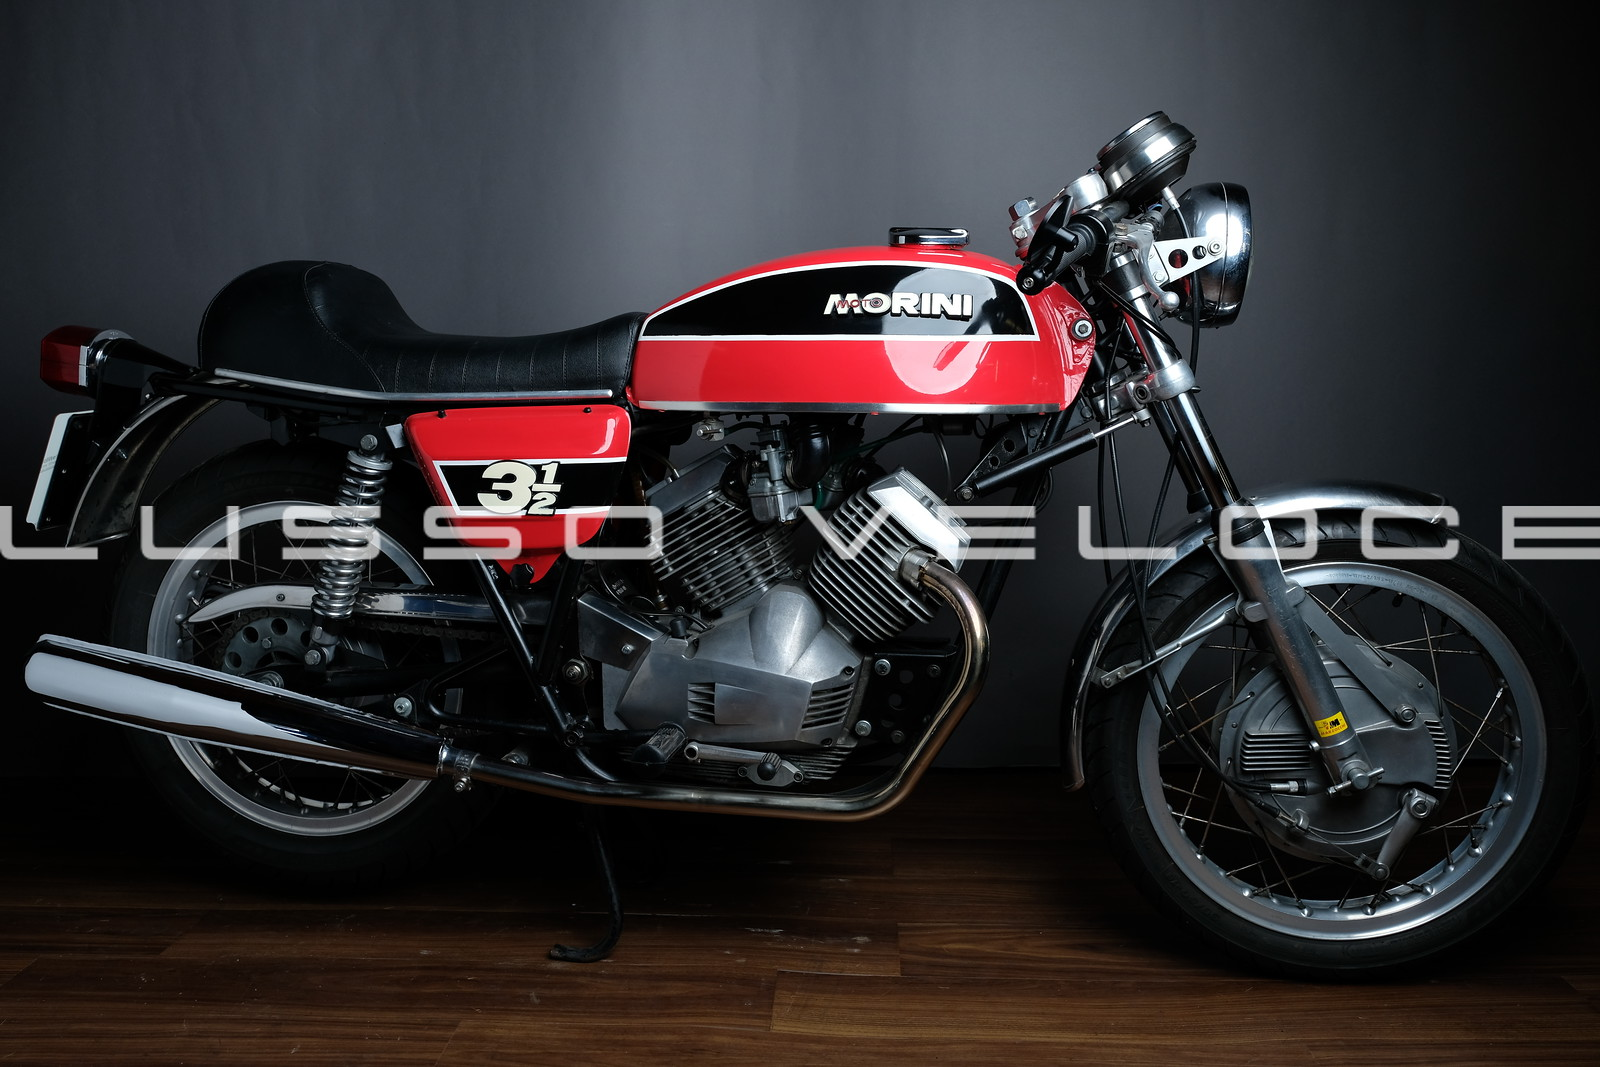 A look at the Morini 350 Sport Double Drum